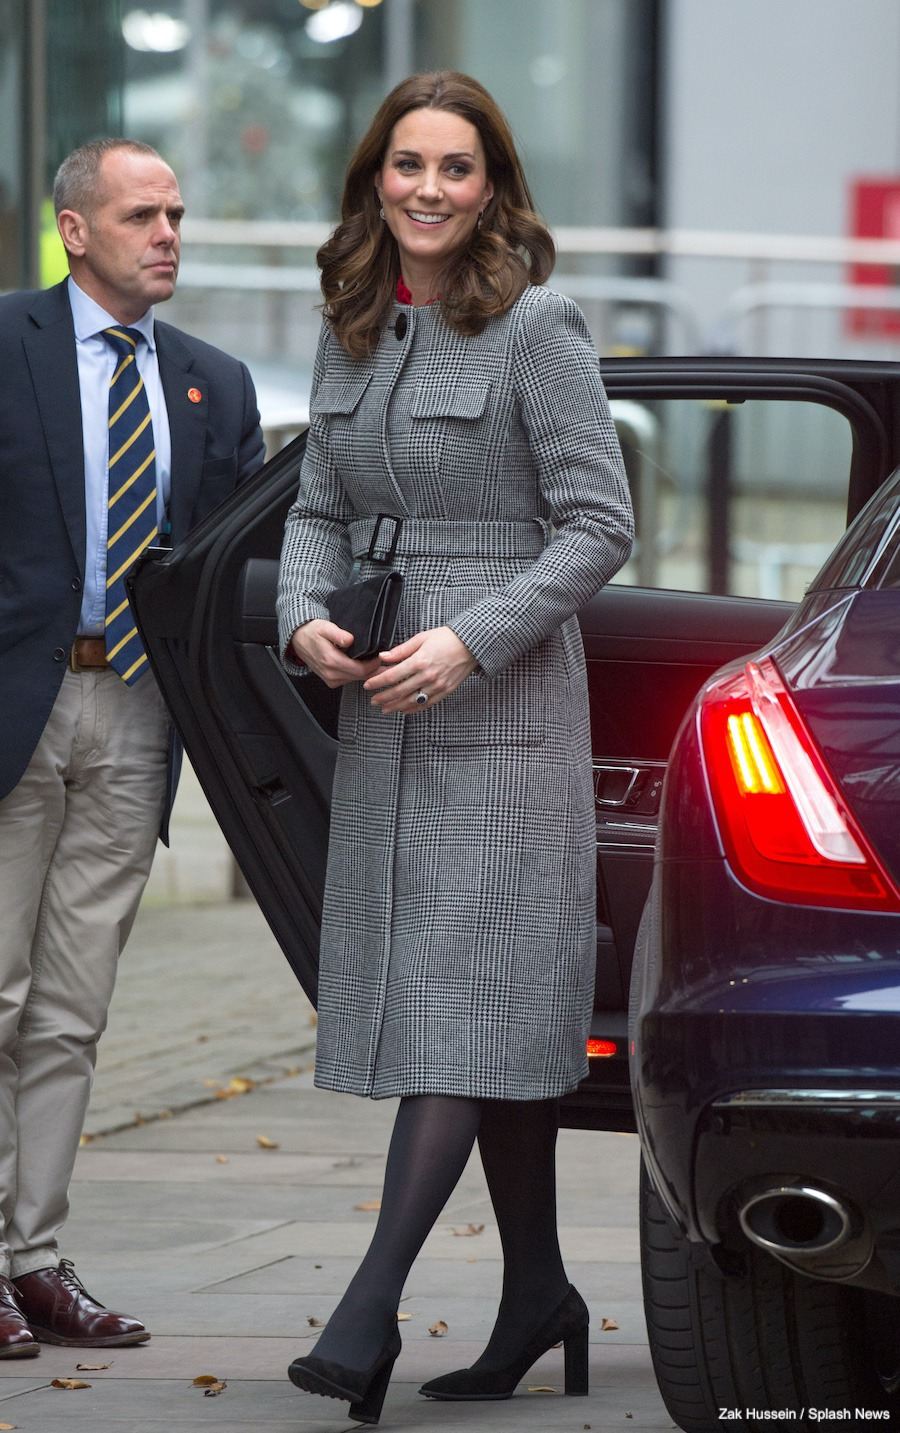 Kate Middleton visits Manchester wearing an L.K. Bennett Coat